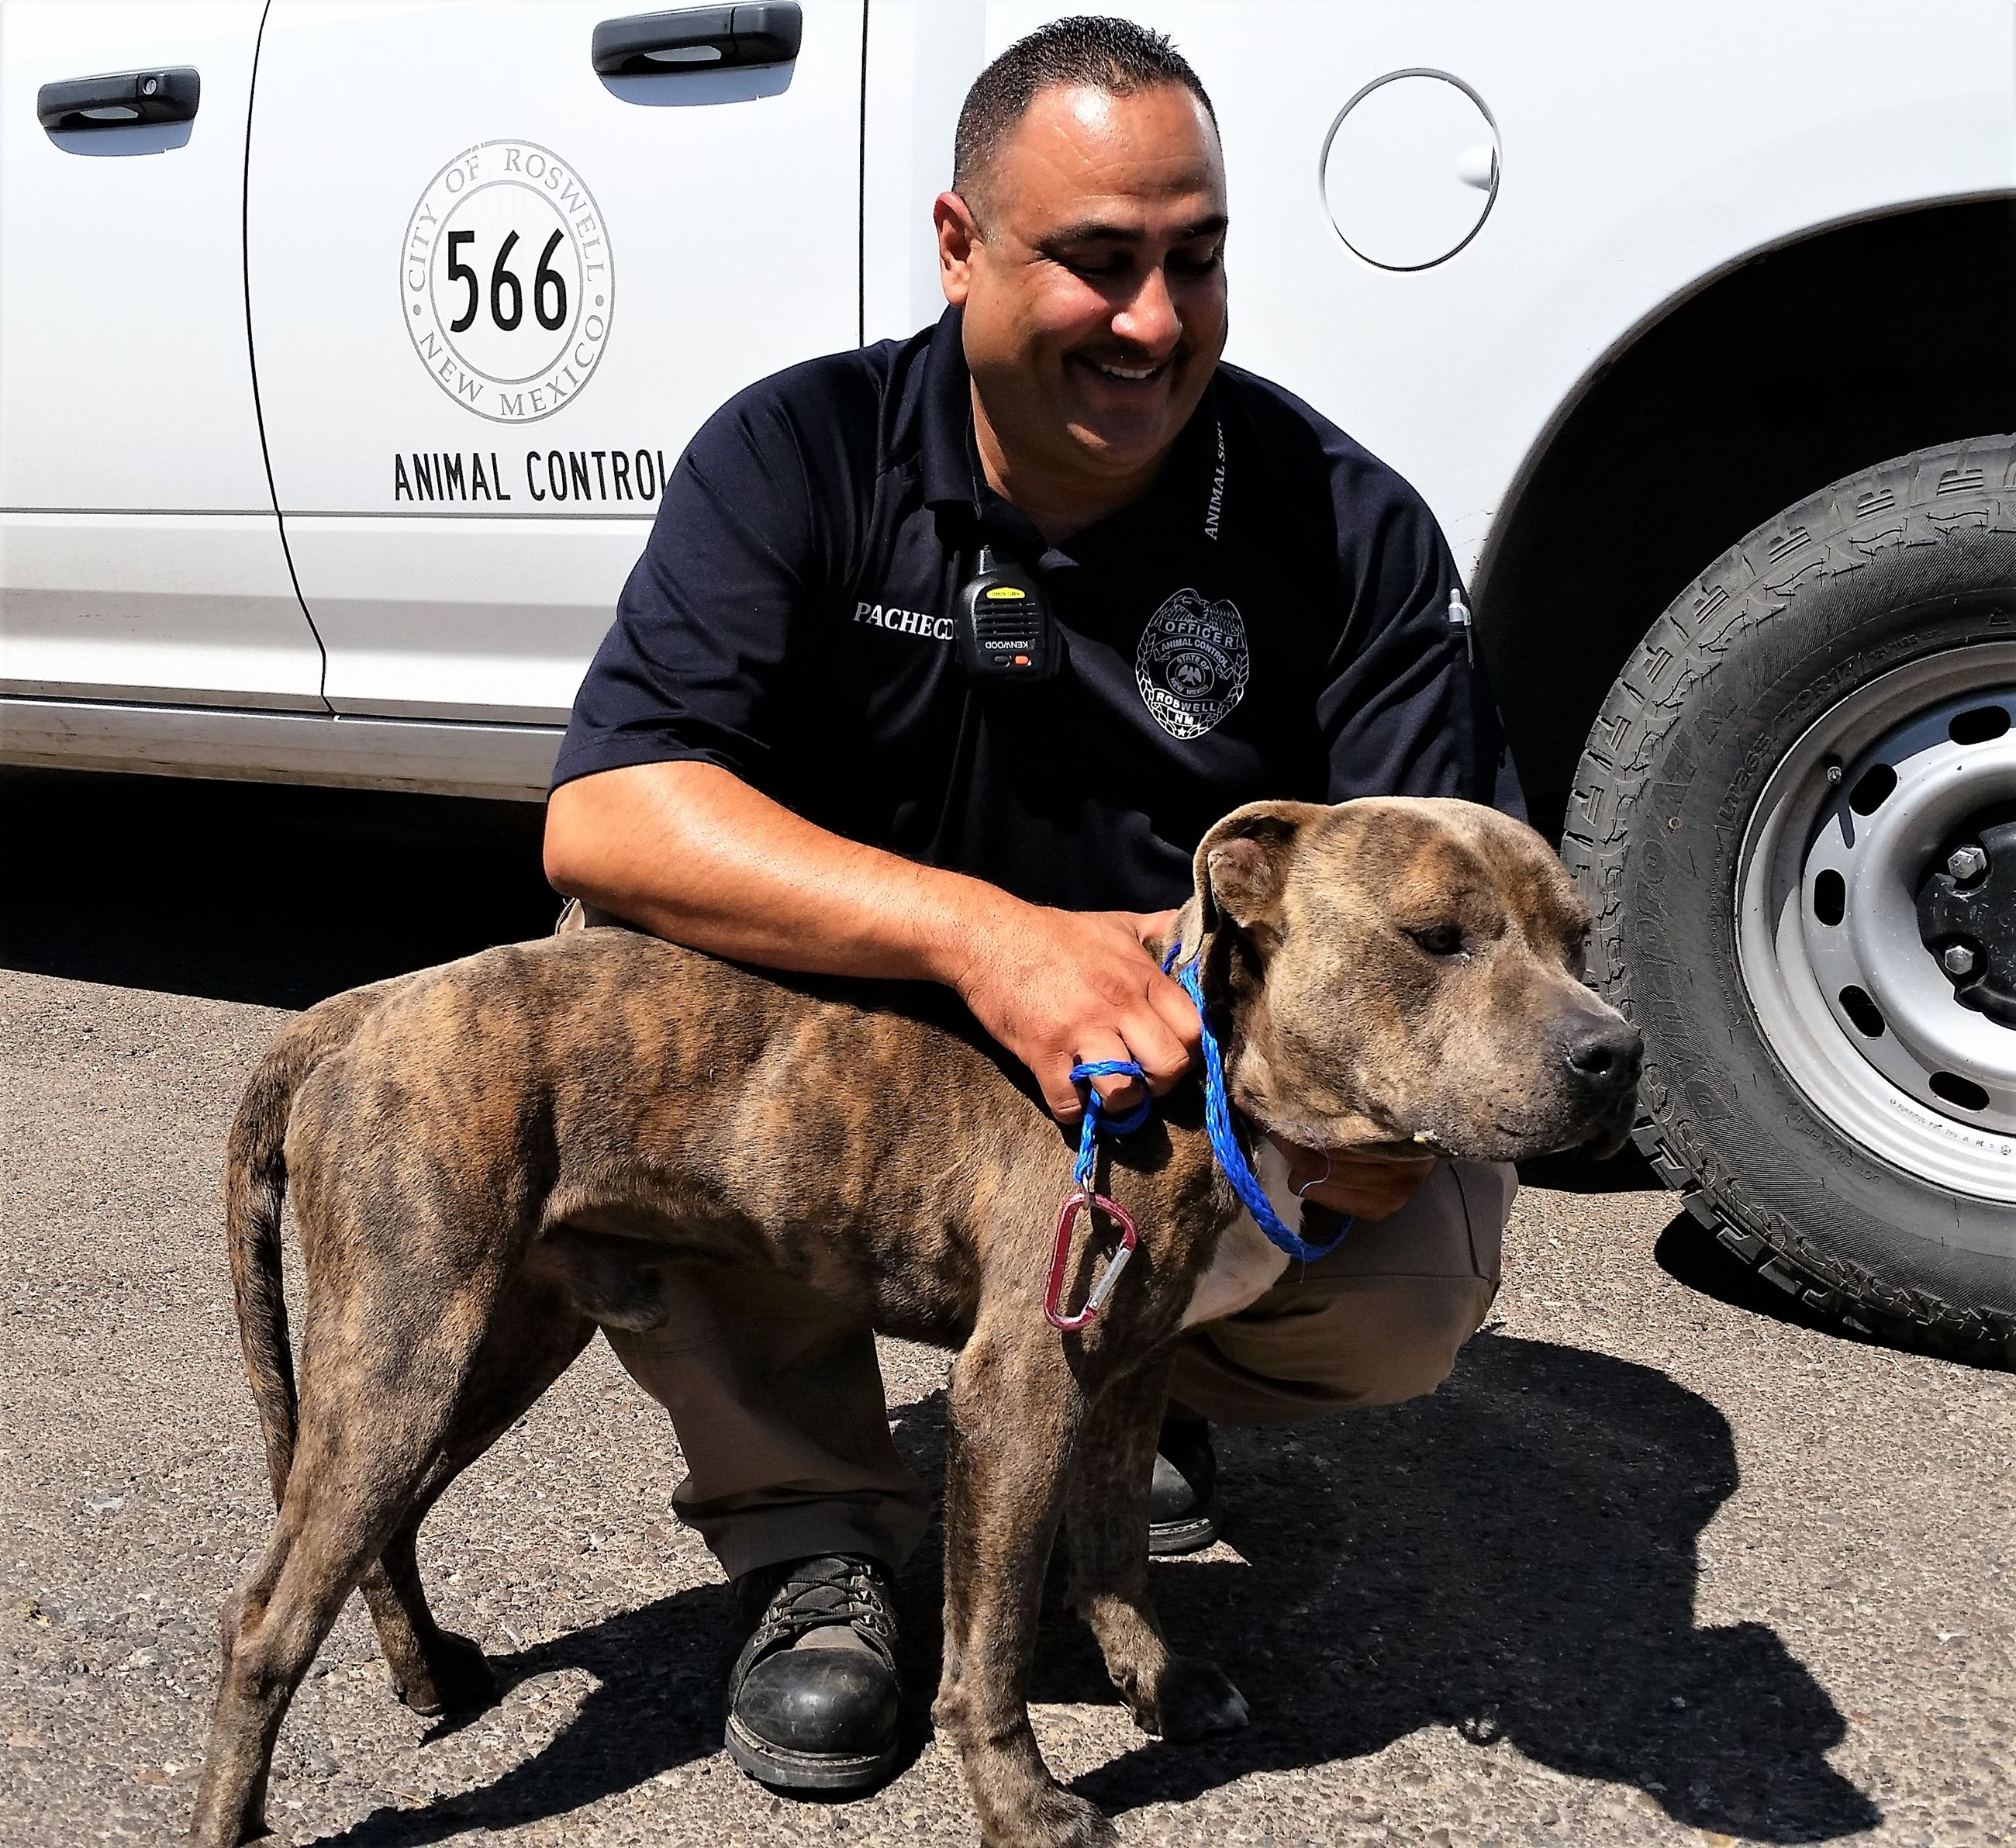 Animal Services Supervisor Joseph Pacheco